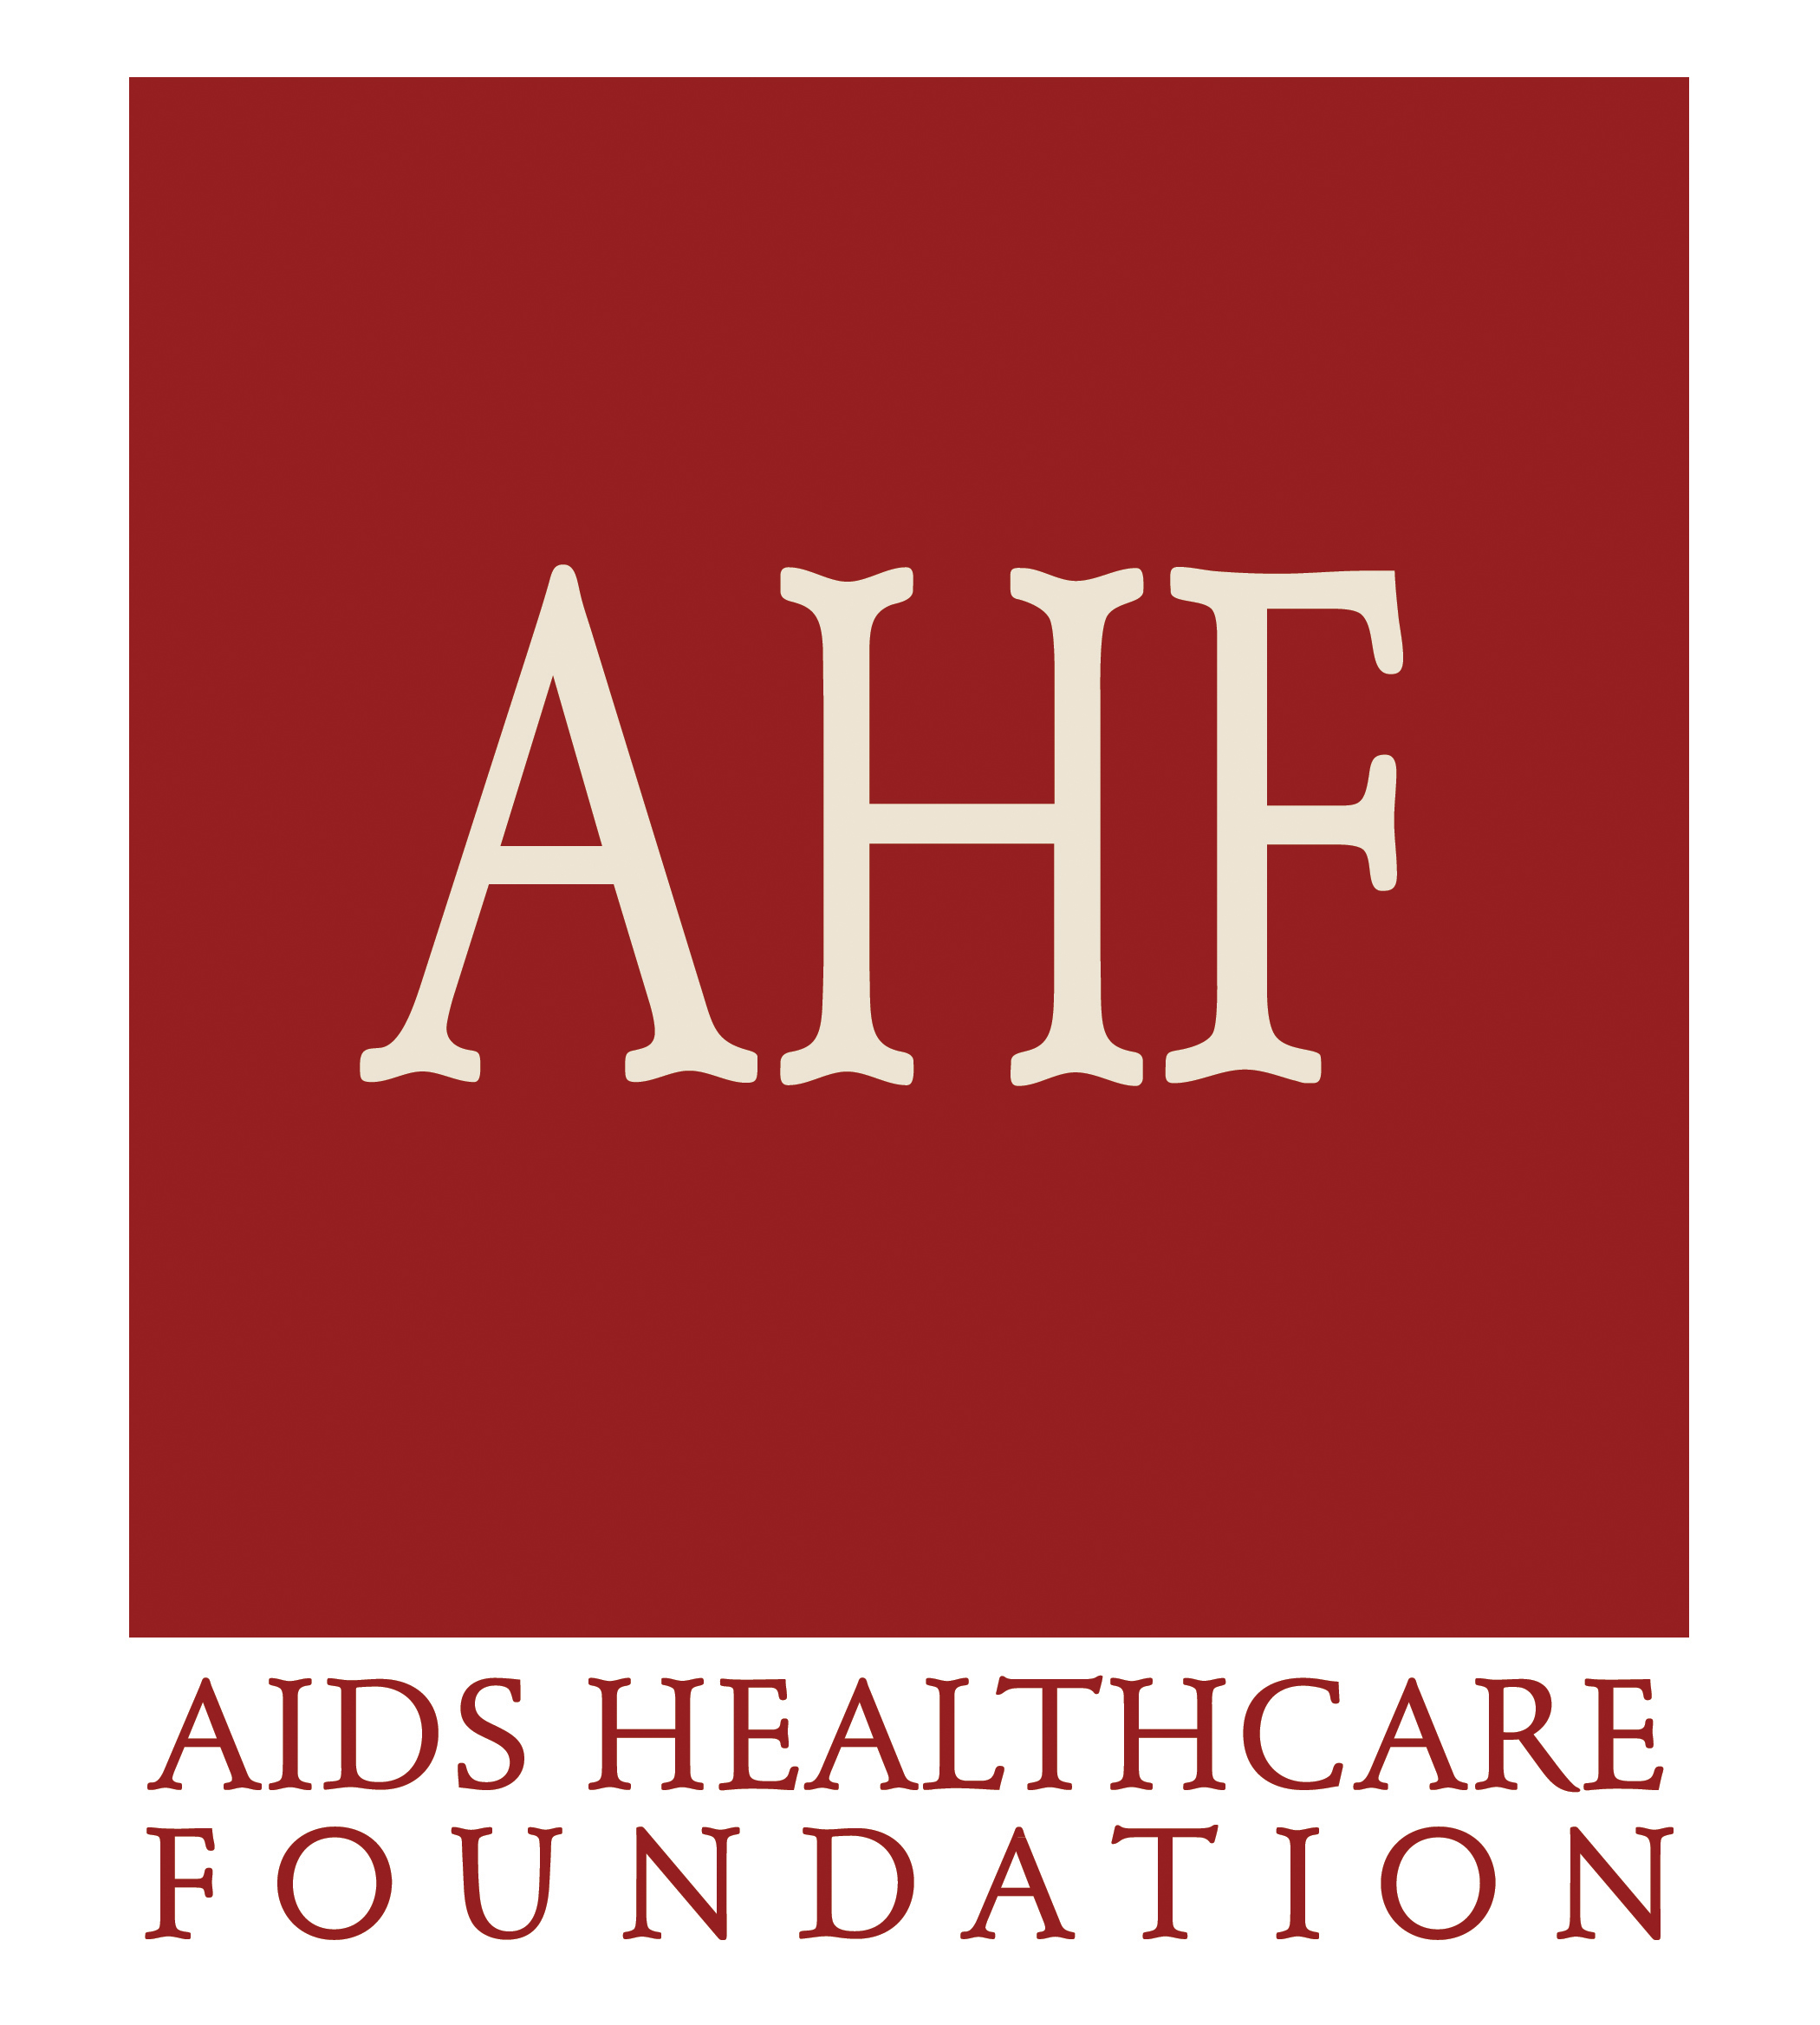 AIDS Healthcare Foundation's logo